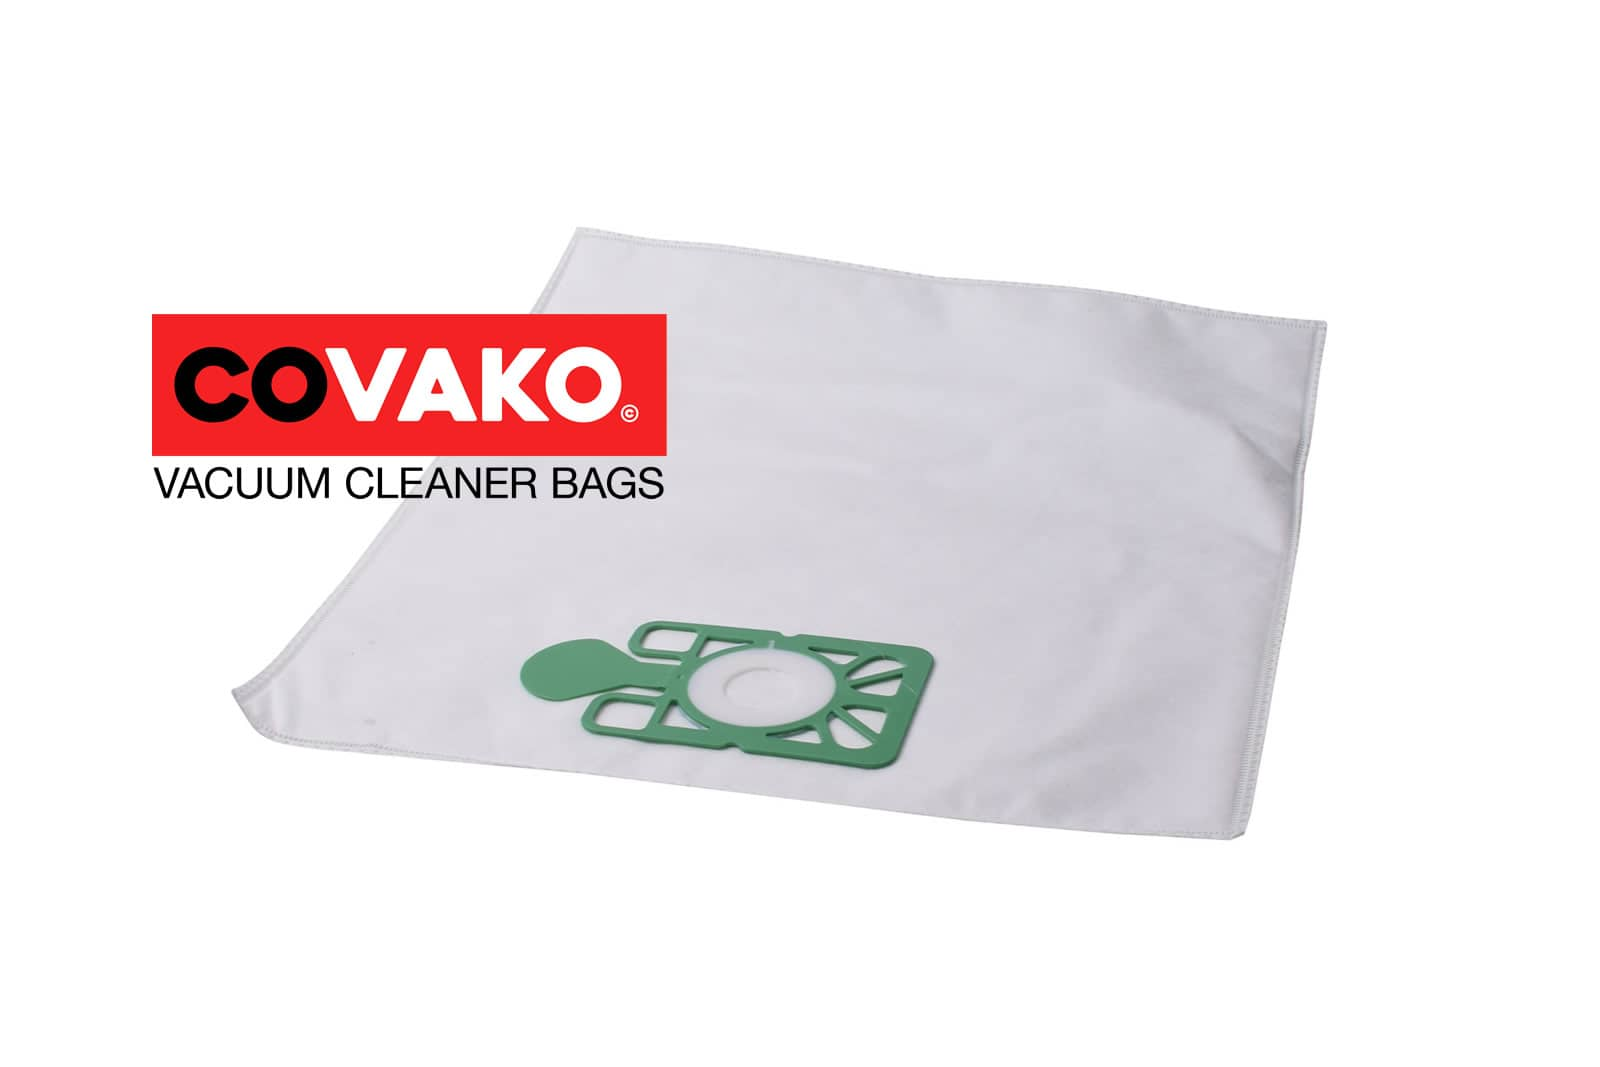 Numatic HVR 160-11 / Synthesis - Numatic vacuum cleaner bags